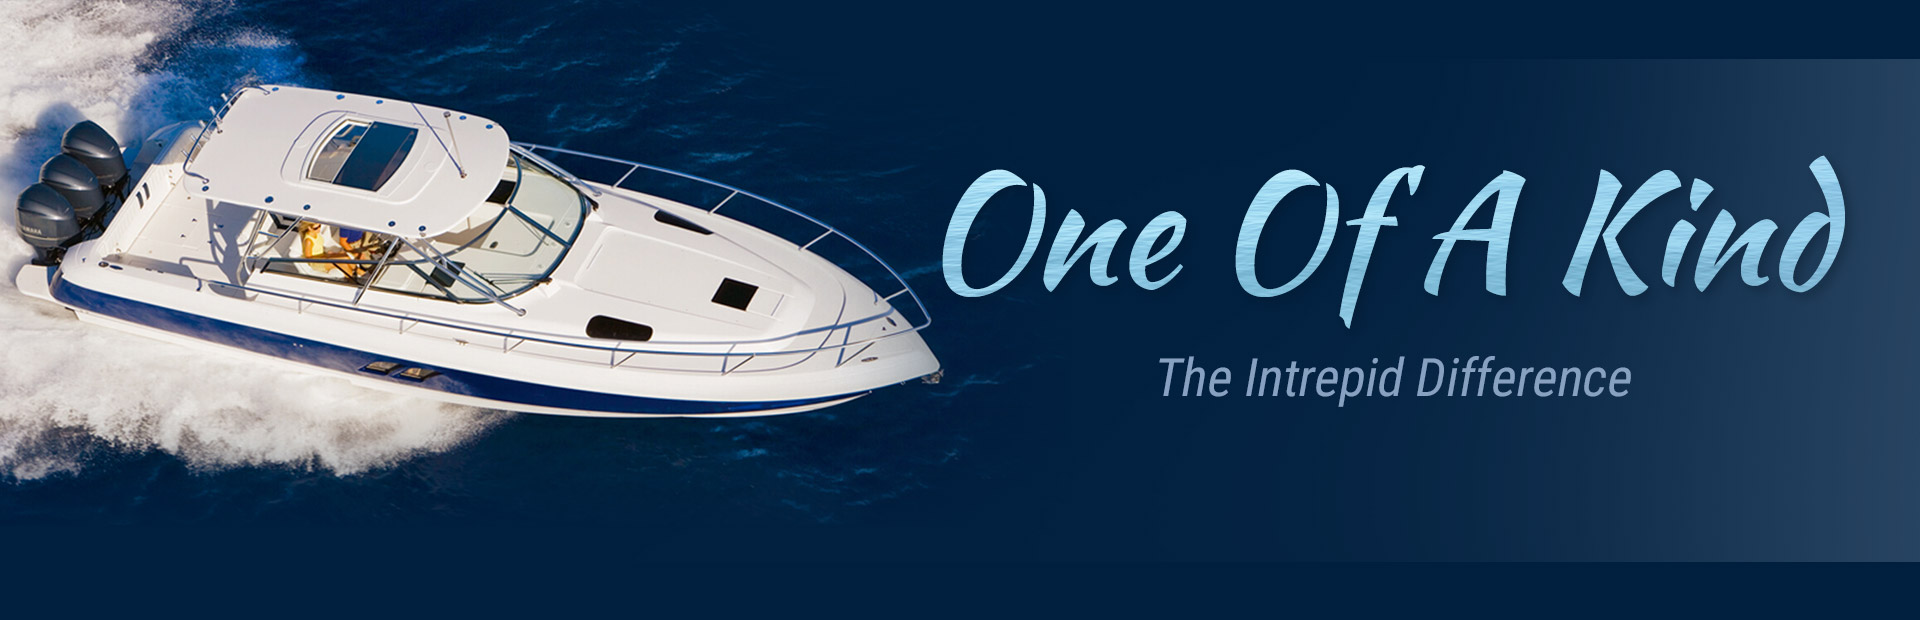 One of a kind: Click here to see our Intrepid inventory!